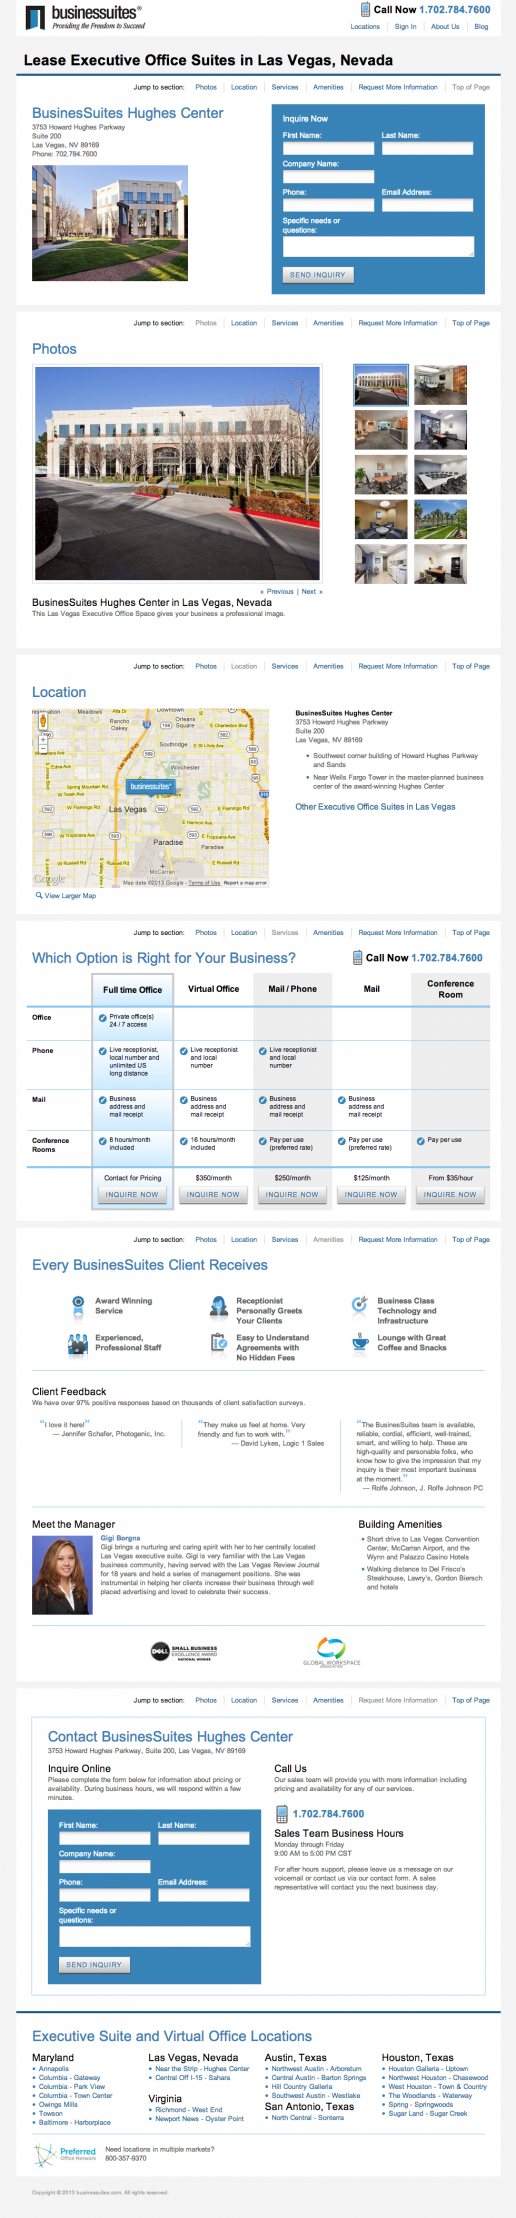 BusinesSuites Property Detail Page – example 2